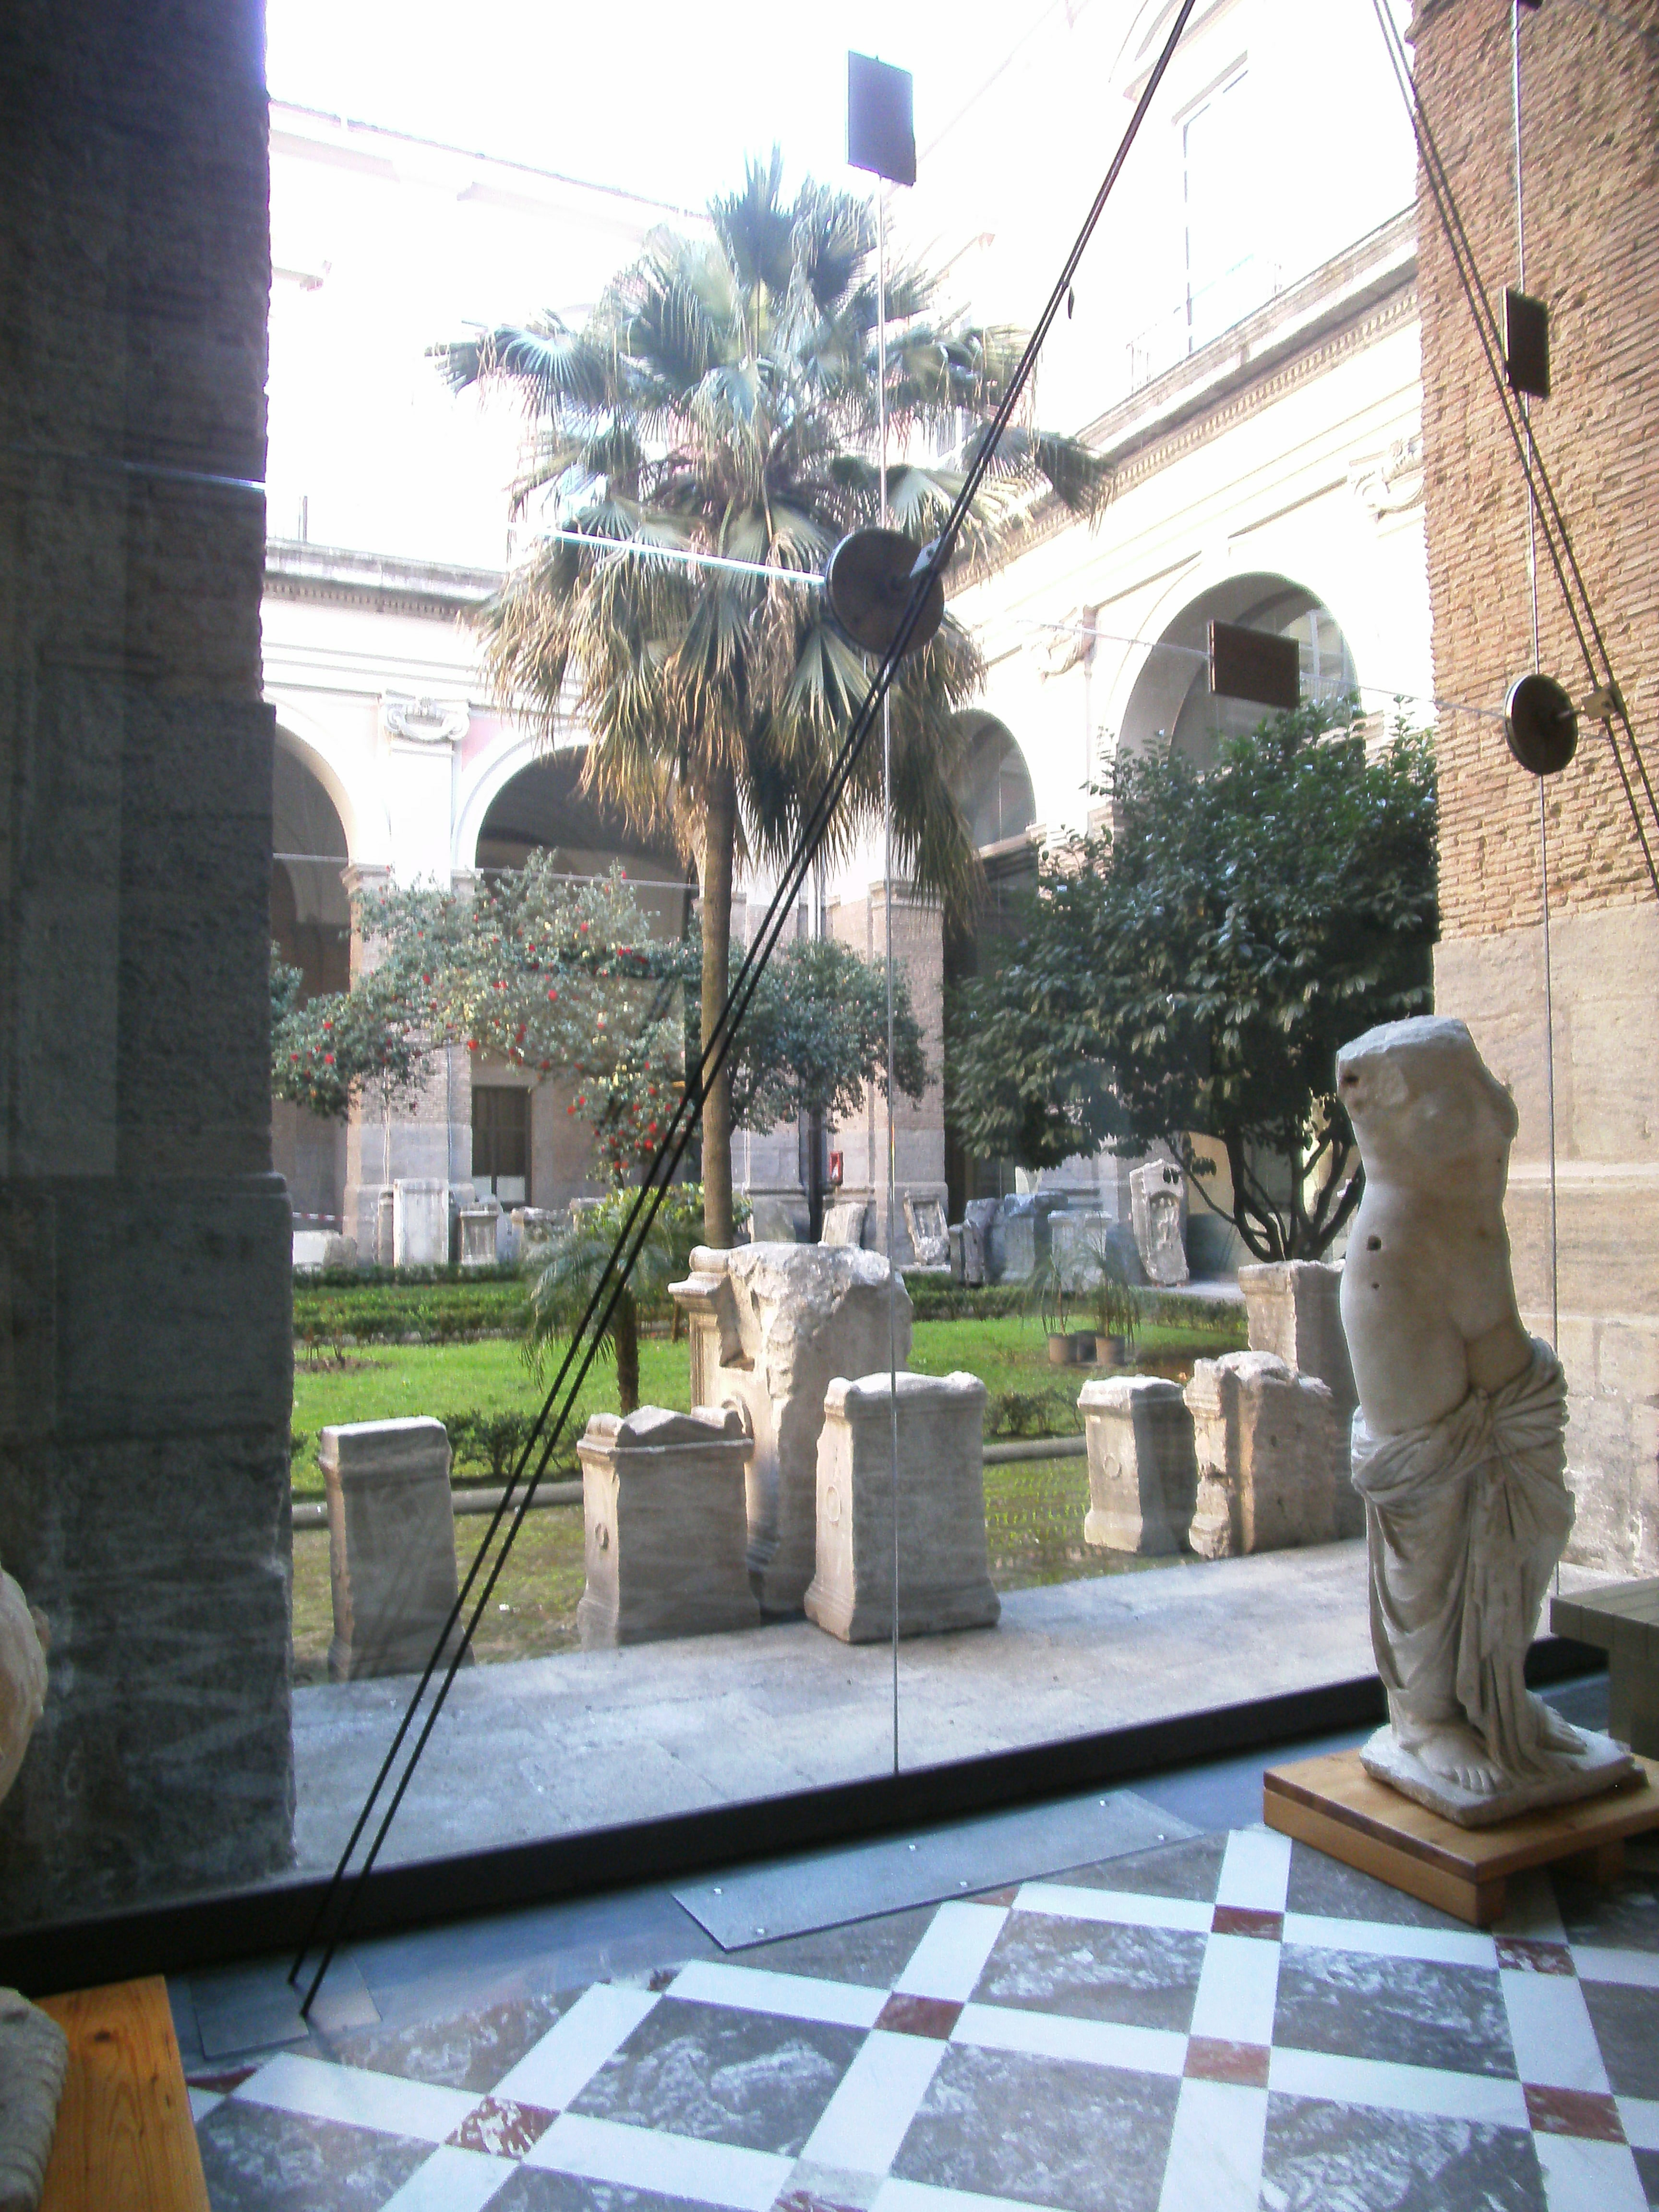 Patio at Museo Archeologico Nationale, Naples